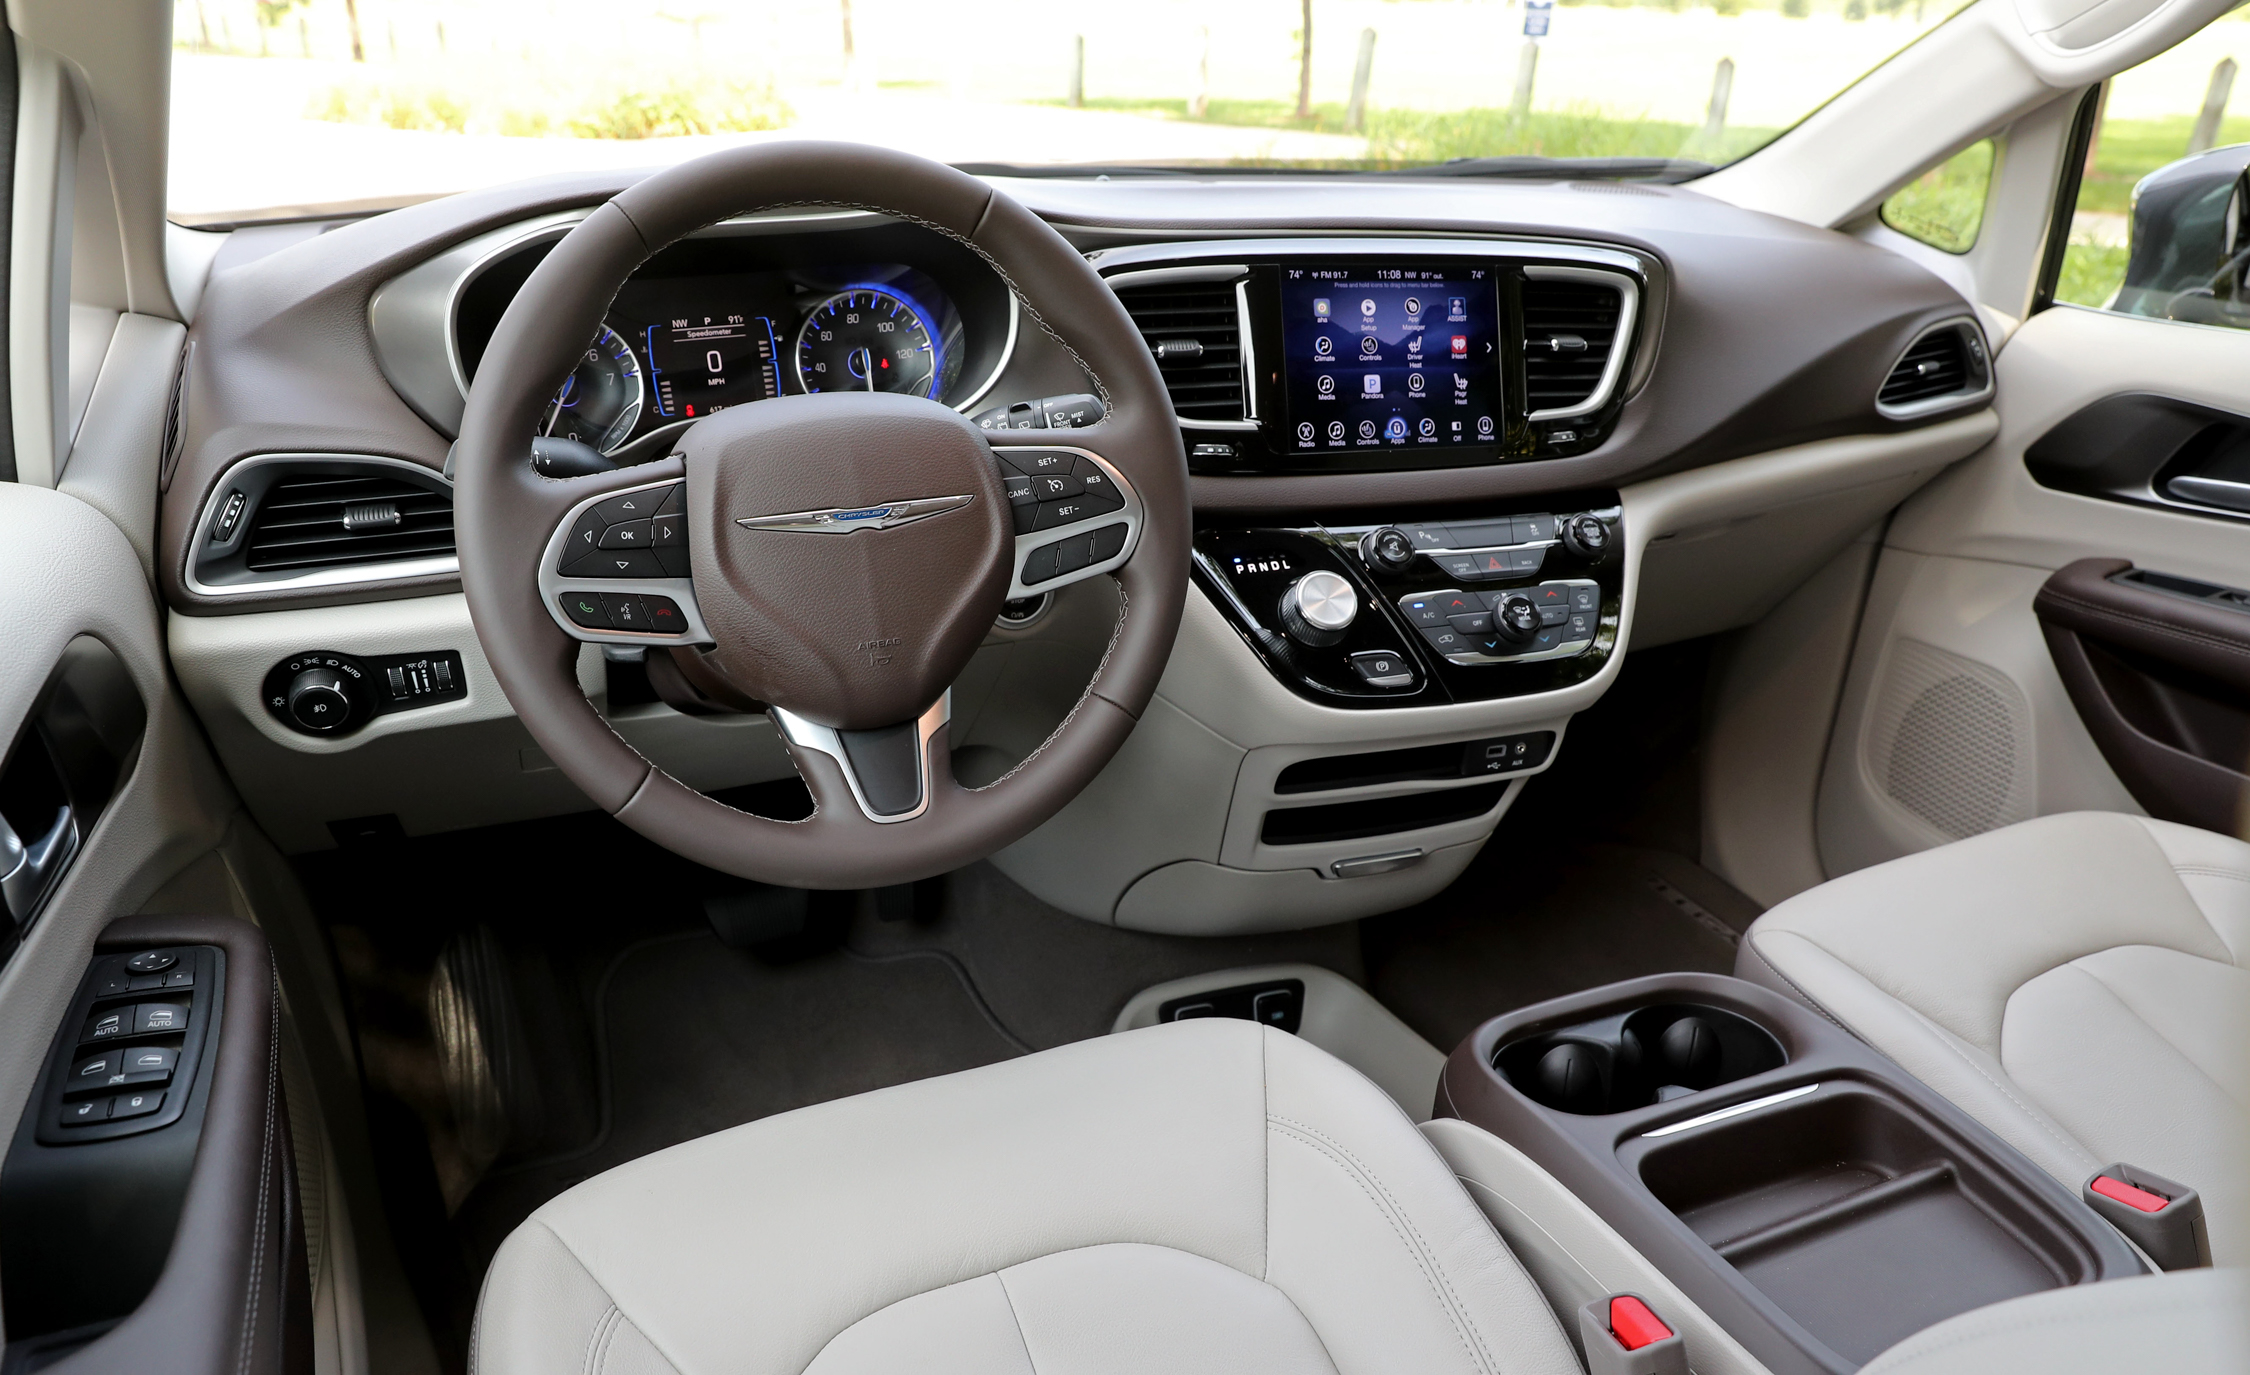 Chrysler Pacifica Dashboard Image 2018 Chrysler Pacifica